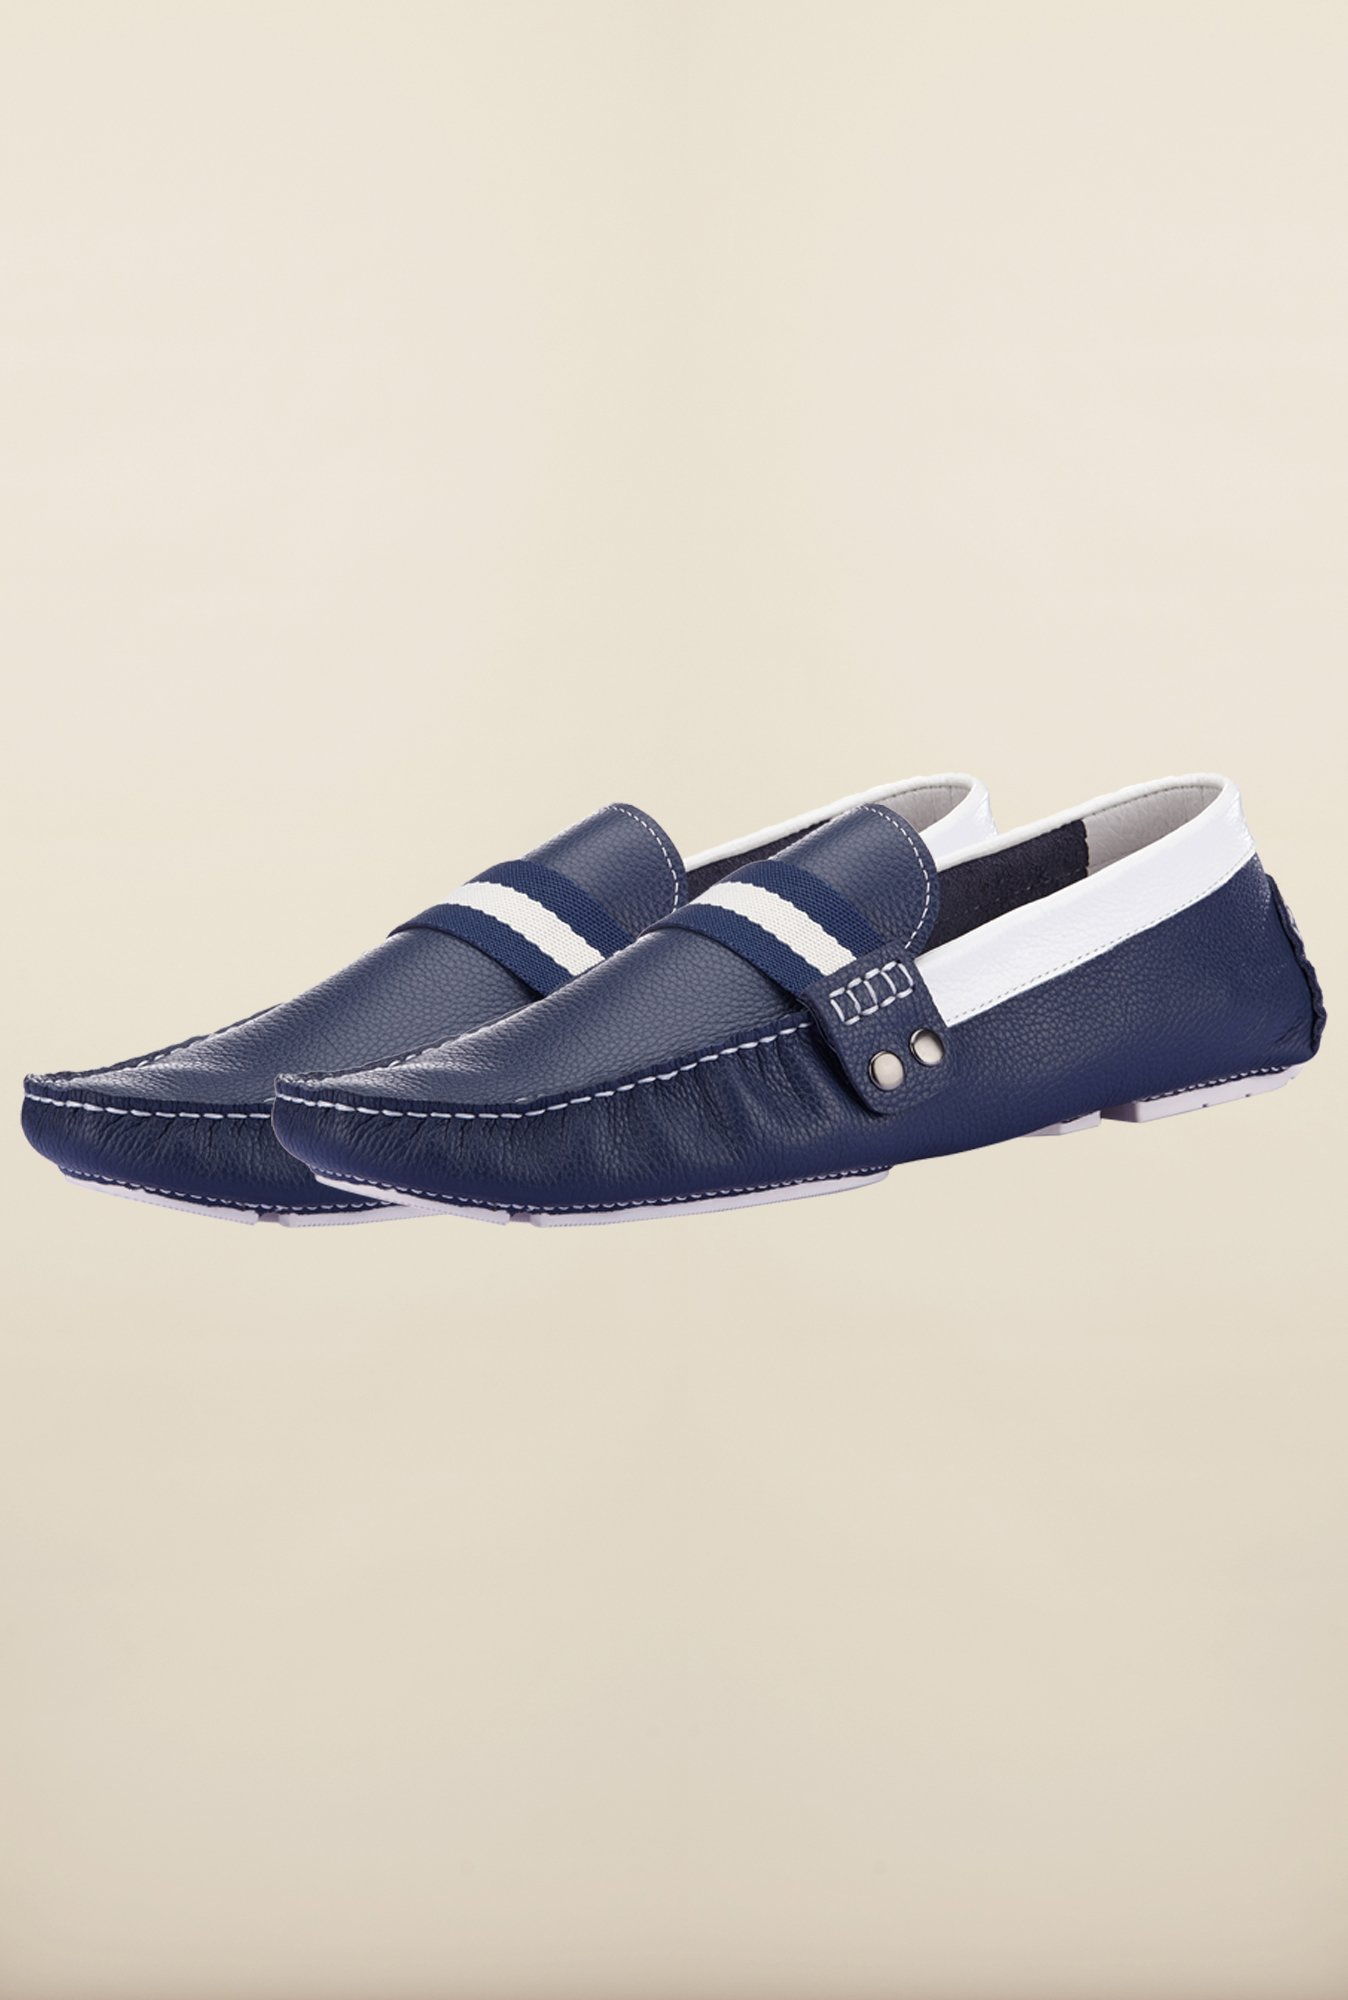 Tresmode Jiestrip Navy & White Loafers